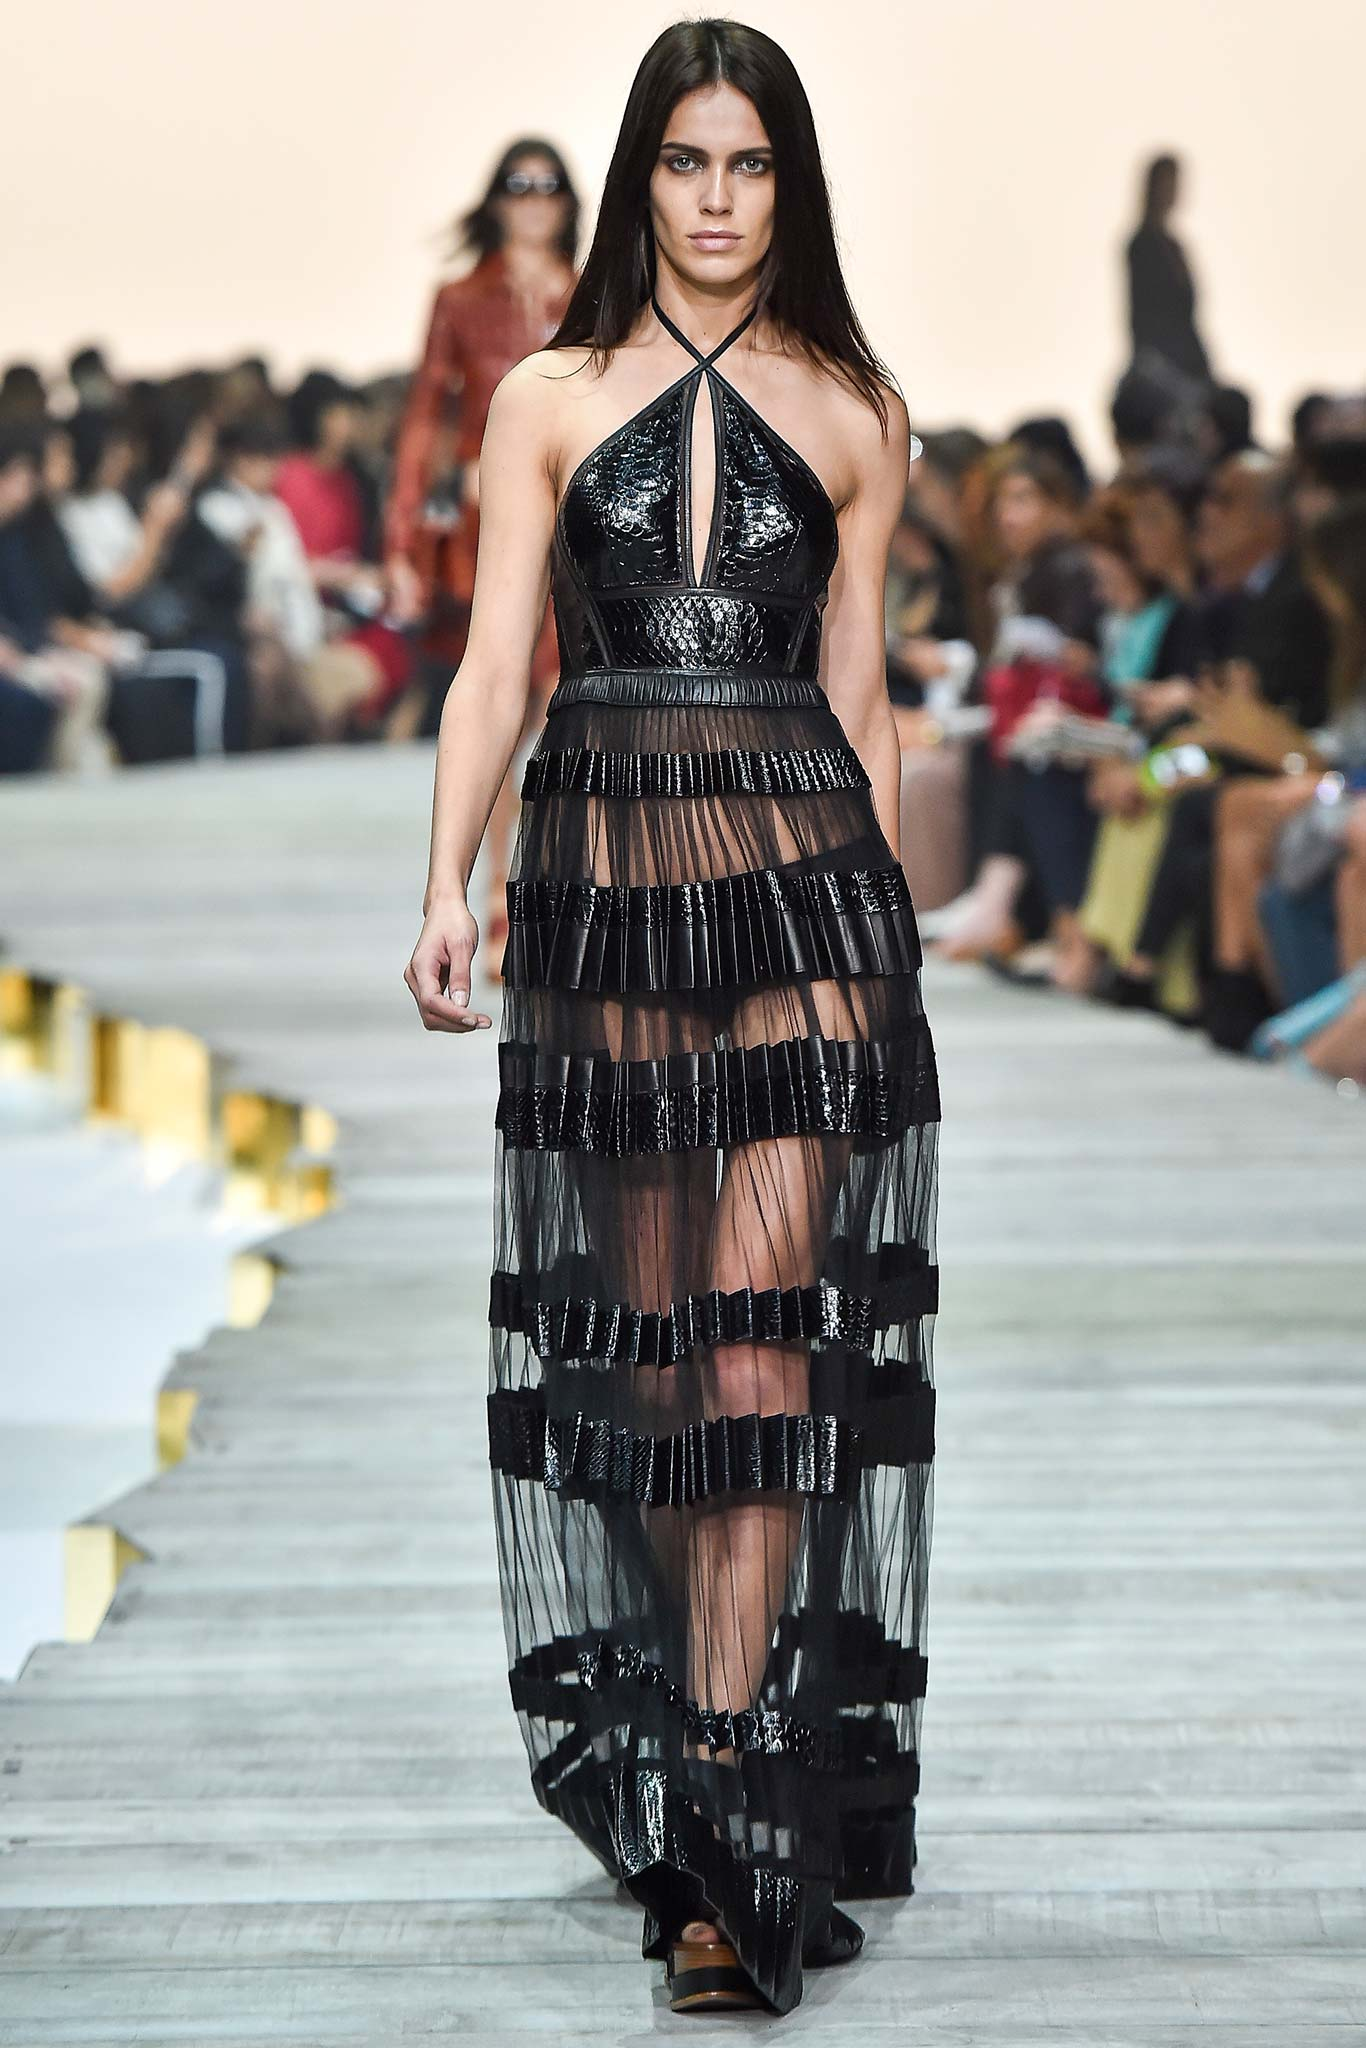 Roberto Cavalli Spring 2014 Dresses it had not been Cavalli